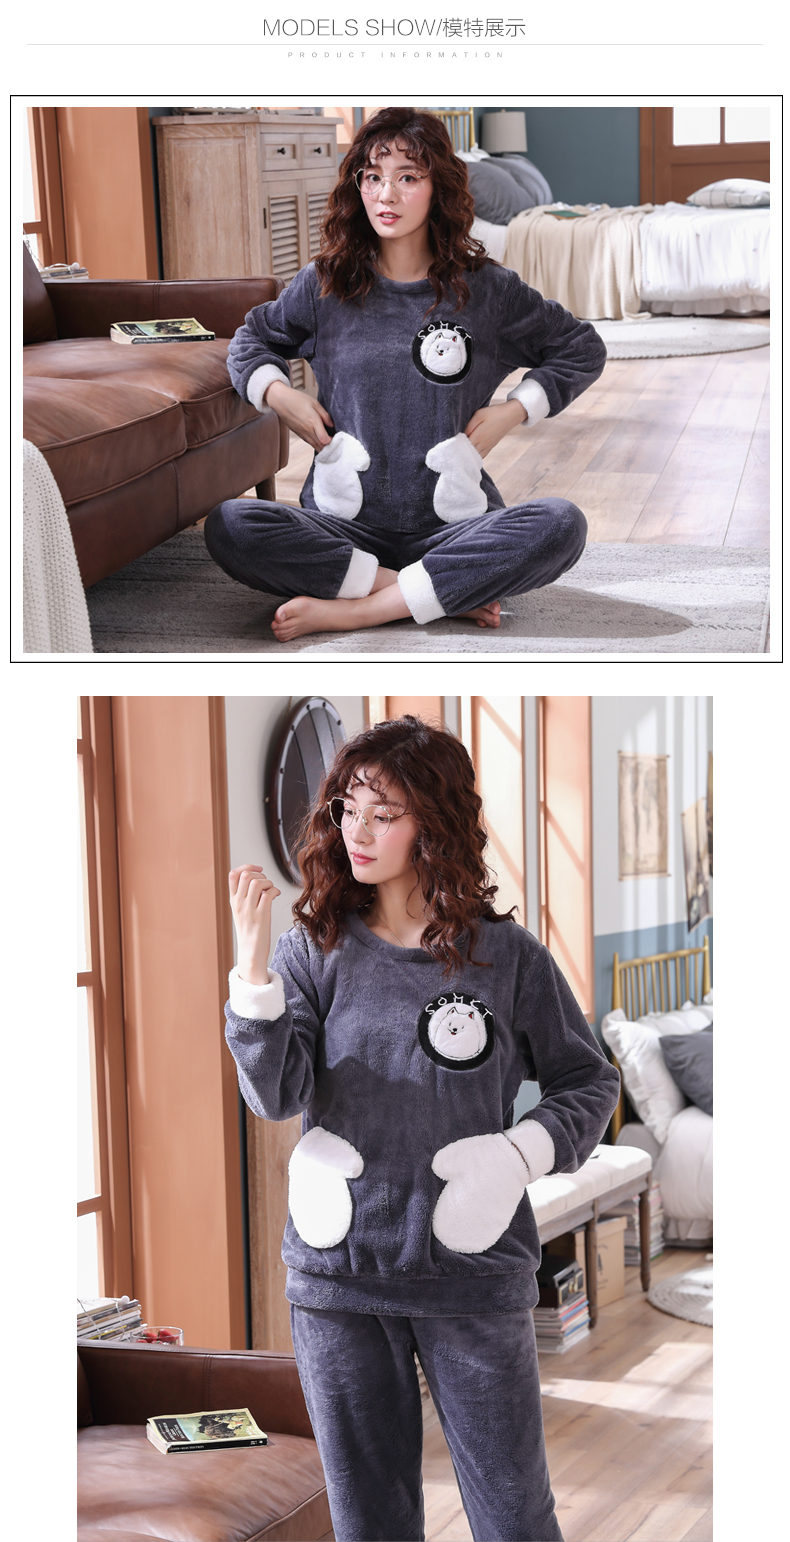 Long Sleeve Warm Flannel Pajamas Winter Women Pajama Sets Print Thicken Sleepwear Pyjamas Plus Size 3XL 4XL 5XL 85kg Nightwear 329